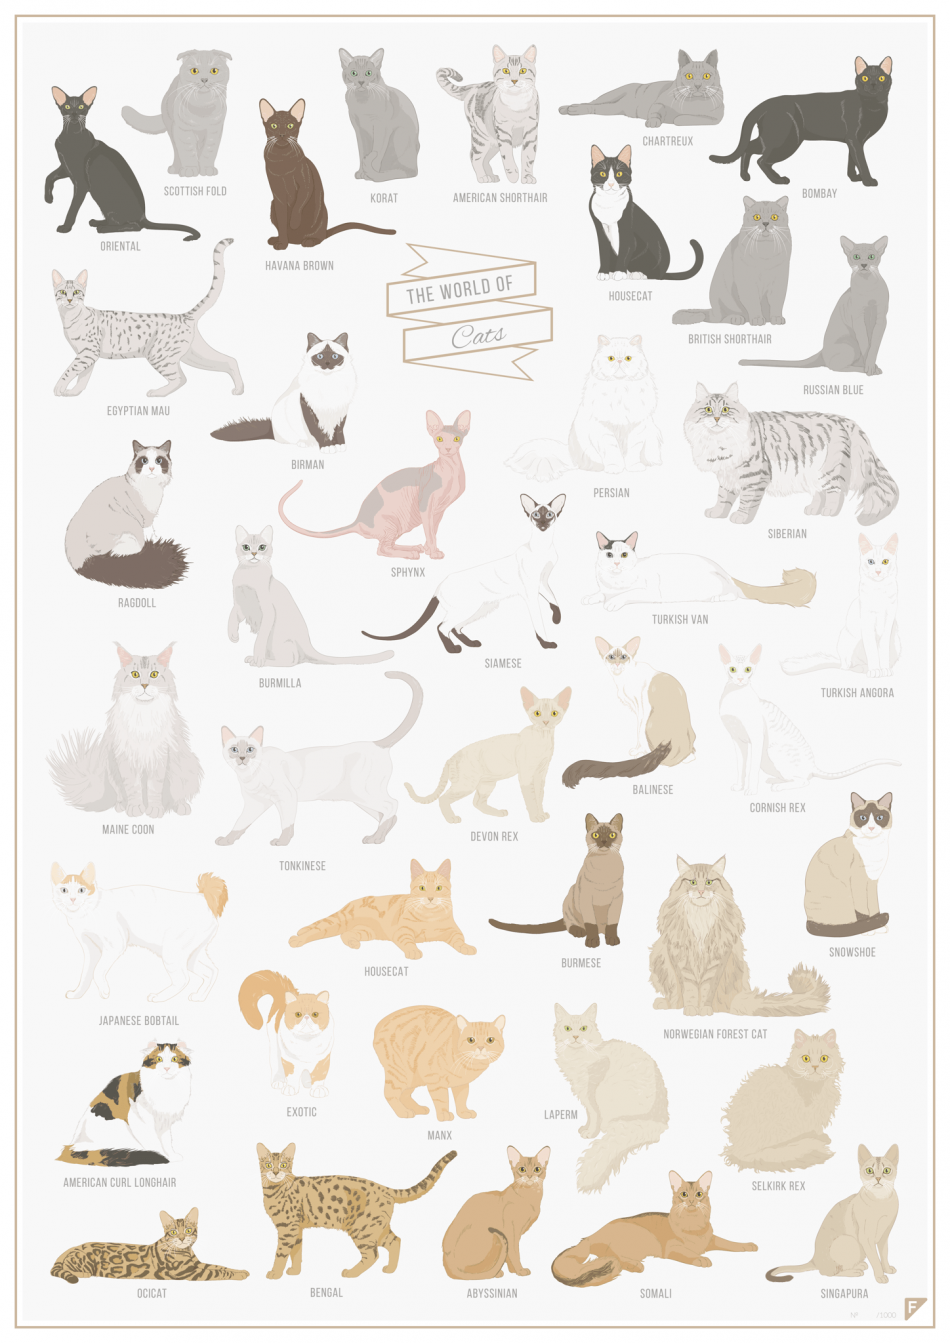 http://bza.co/buy/151675/follygraph/the-world-of-cats